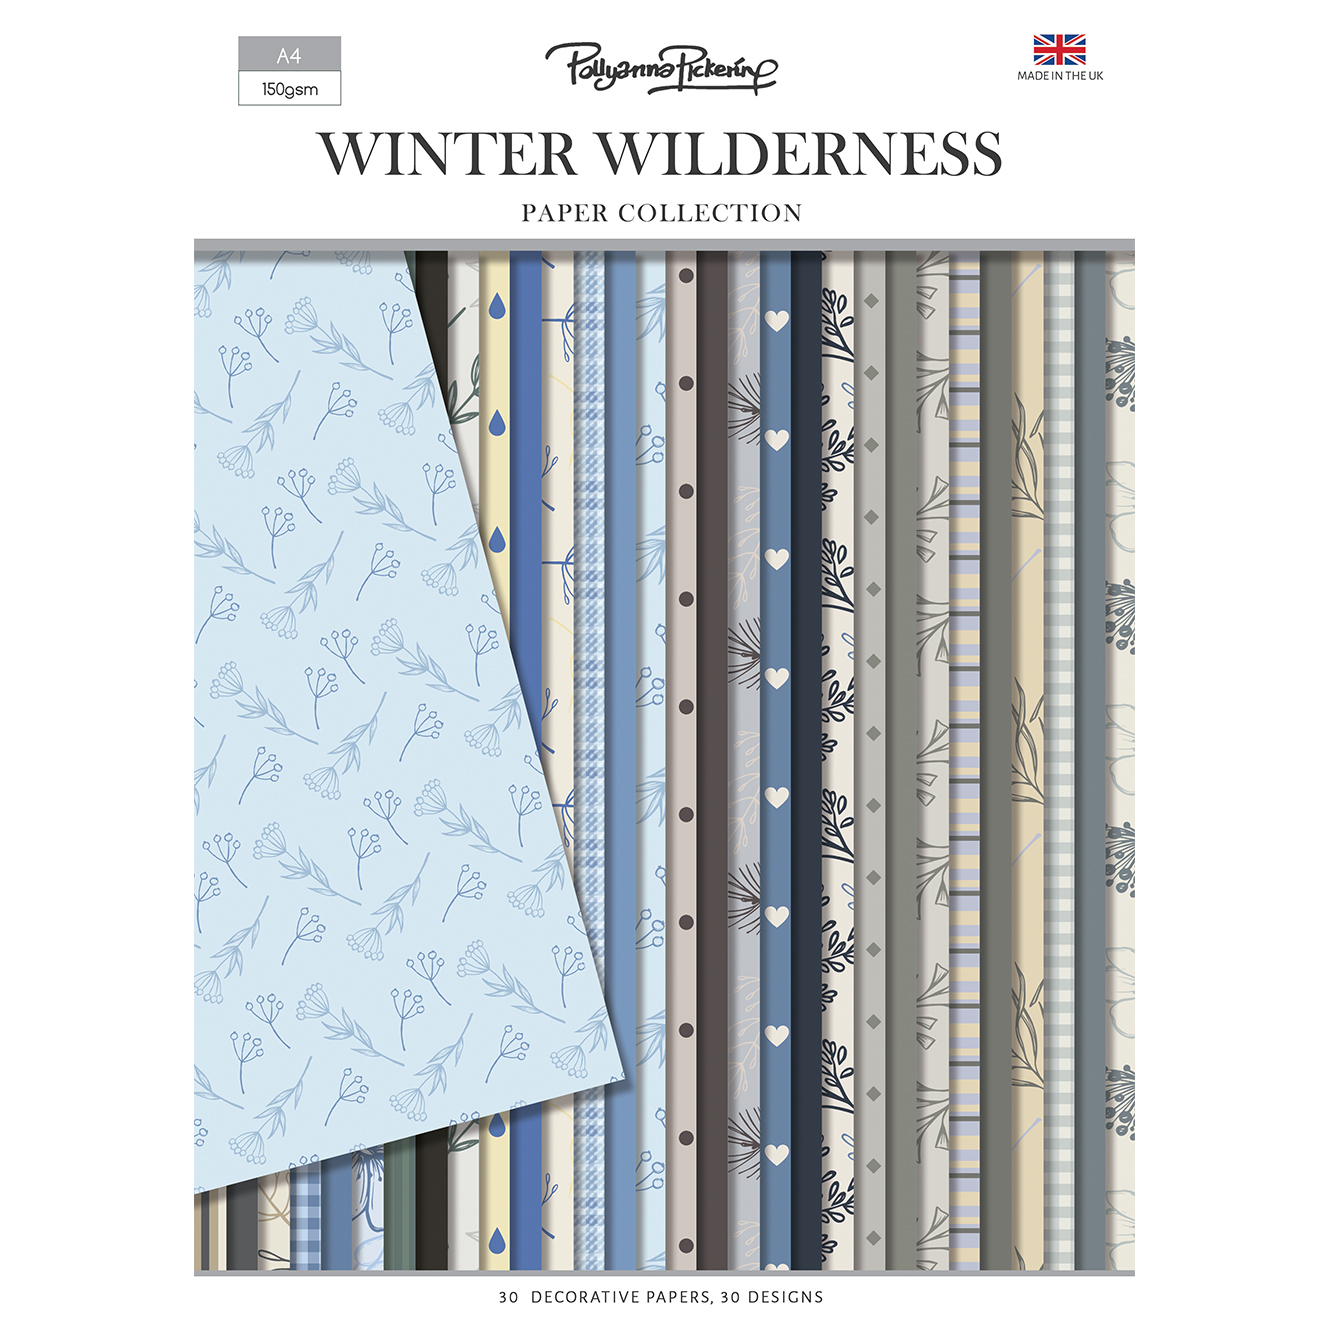 Pollyanna Pickering Winter Wilderness Backing Paper Collection